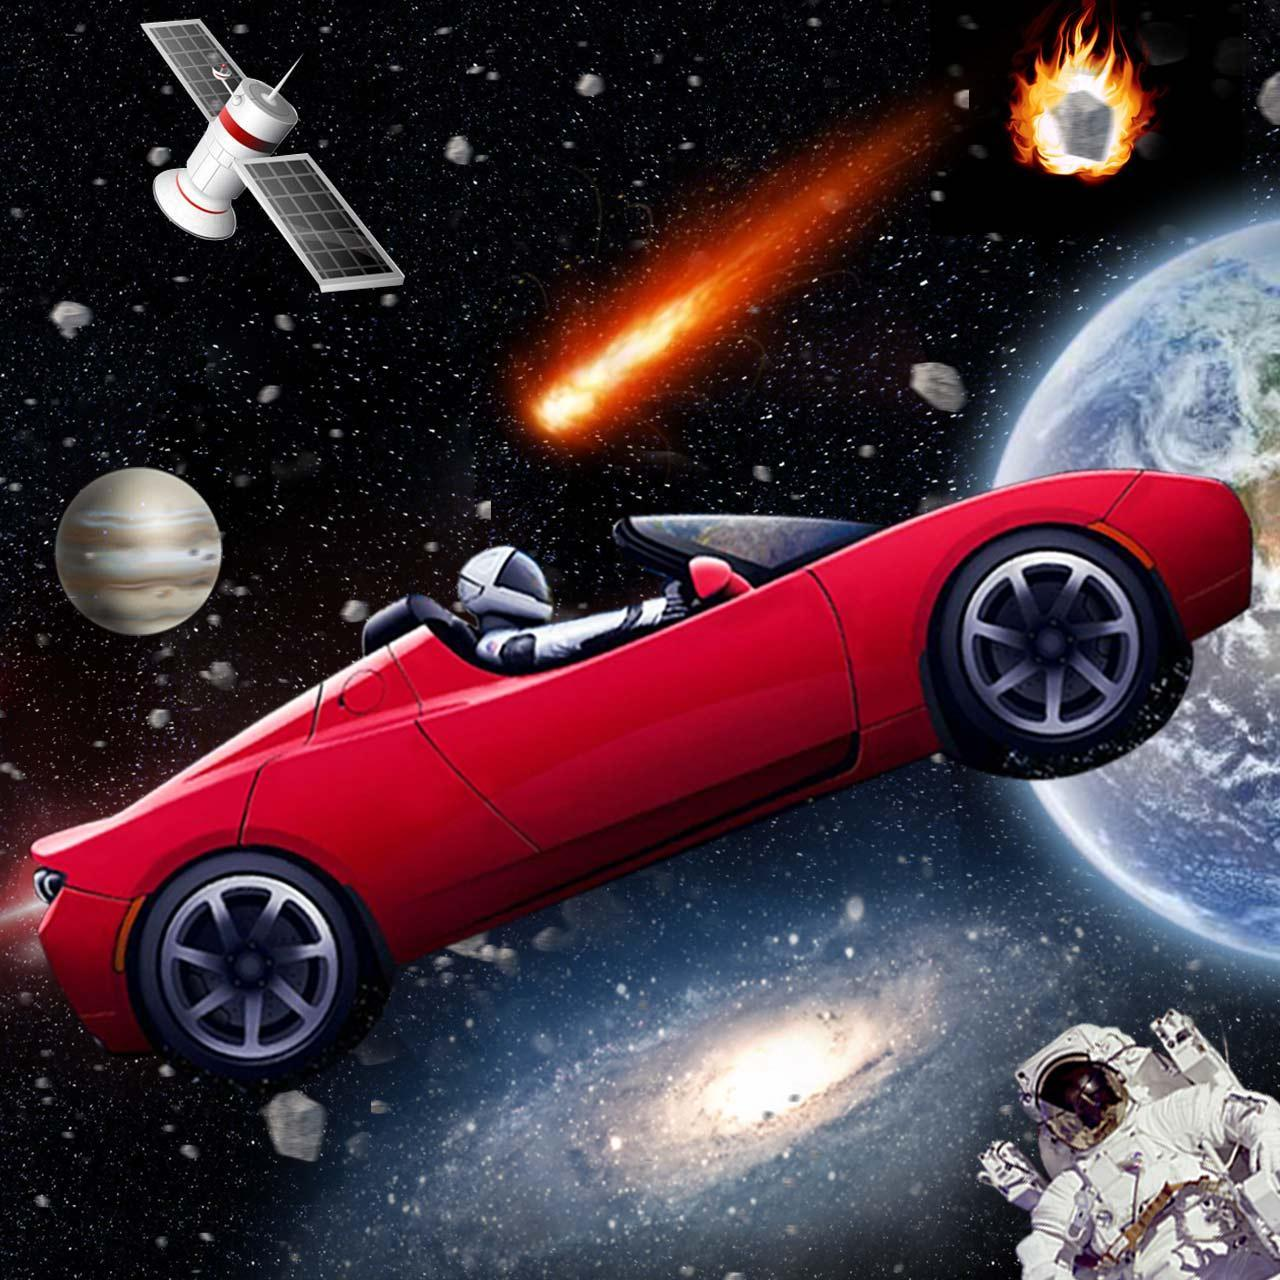 Tesla Roadster Theme Live Wallpaper For Android Apk